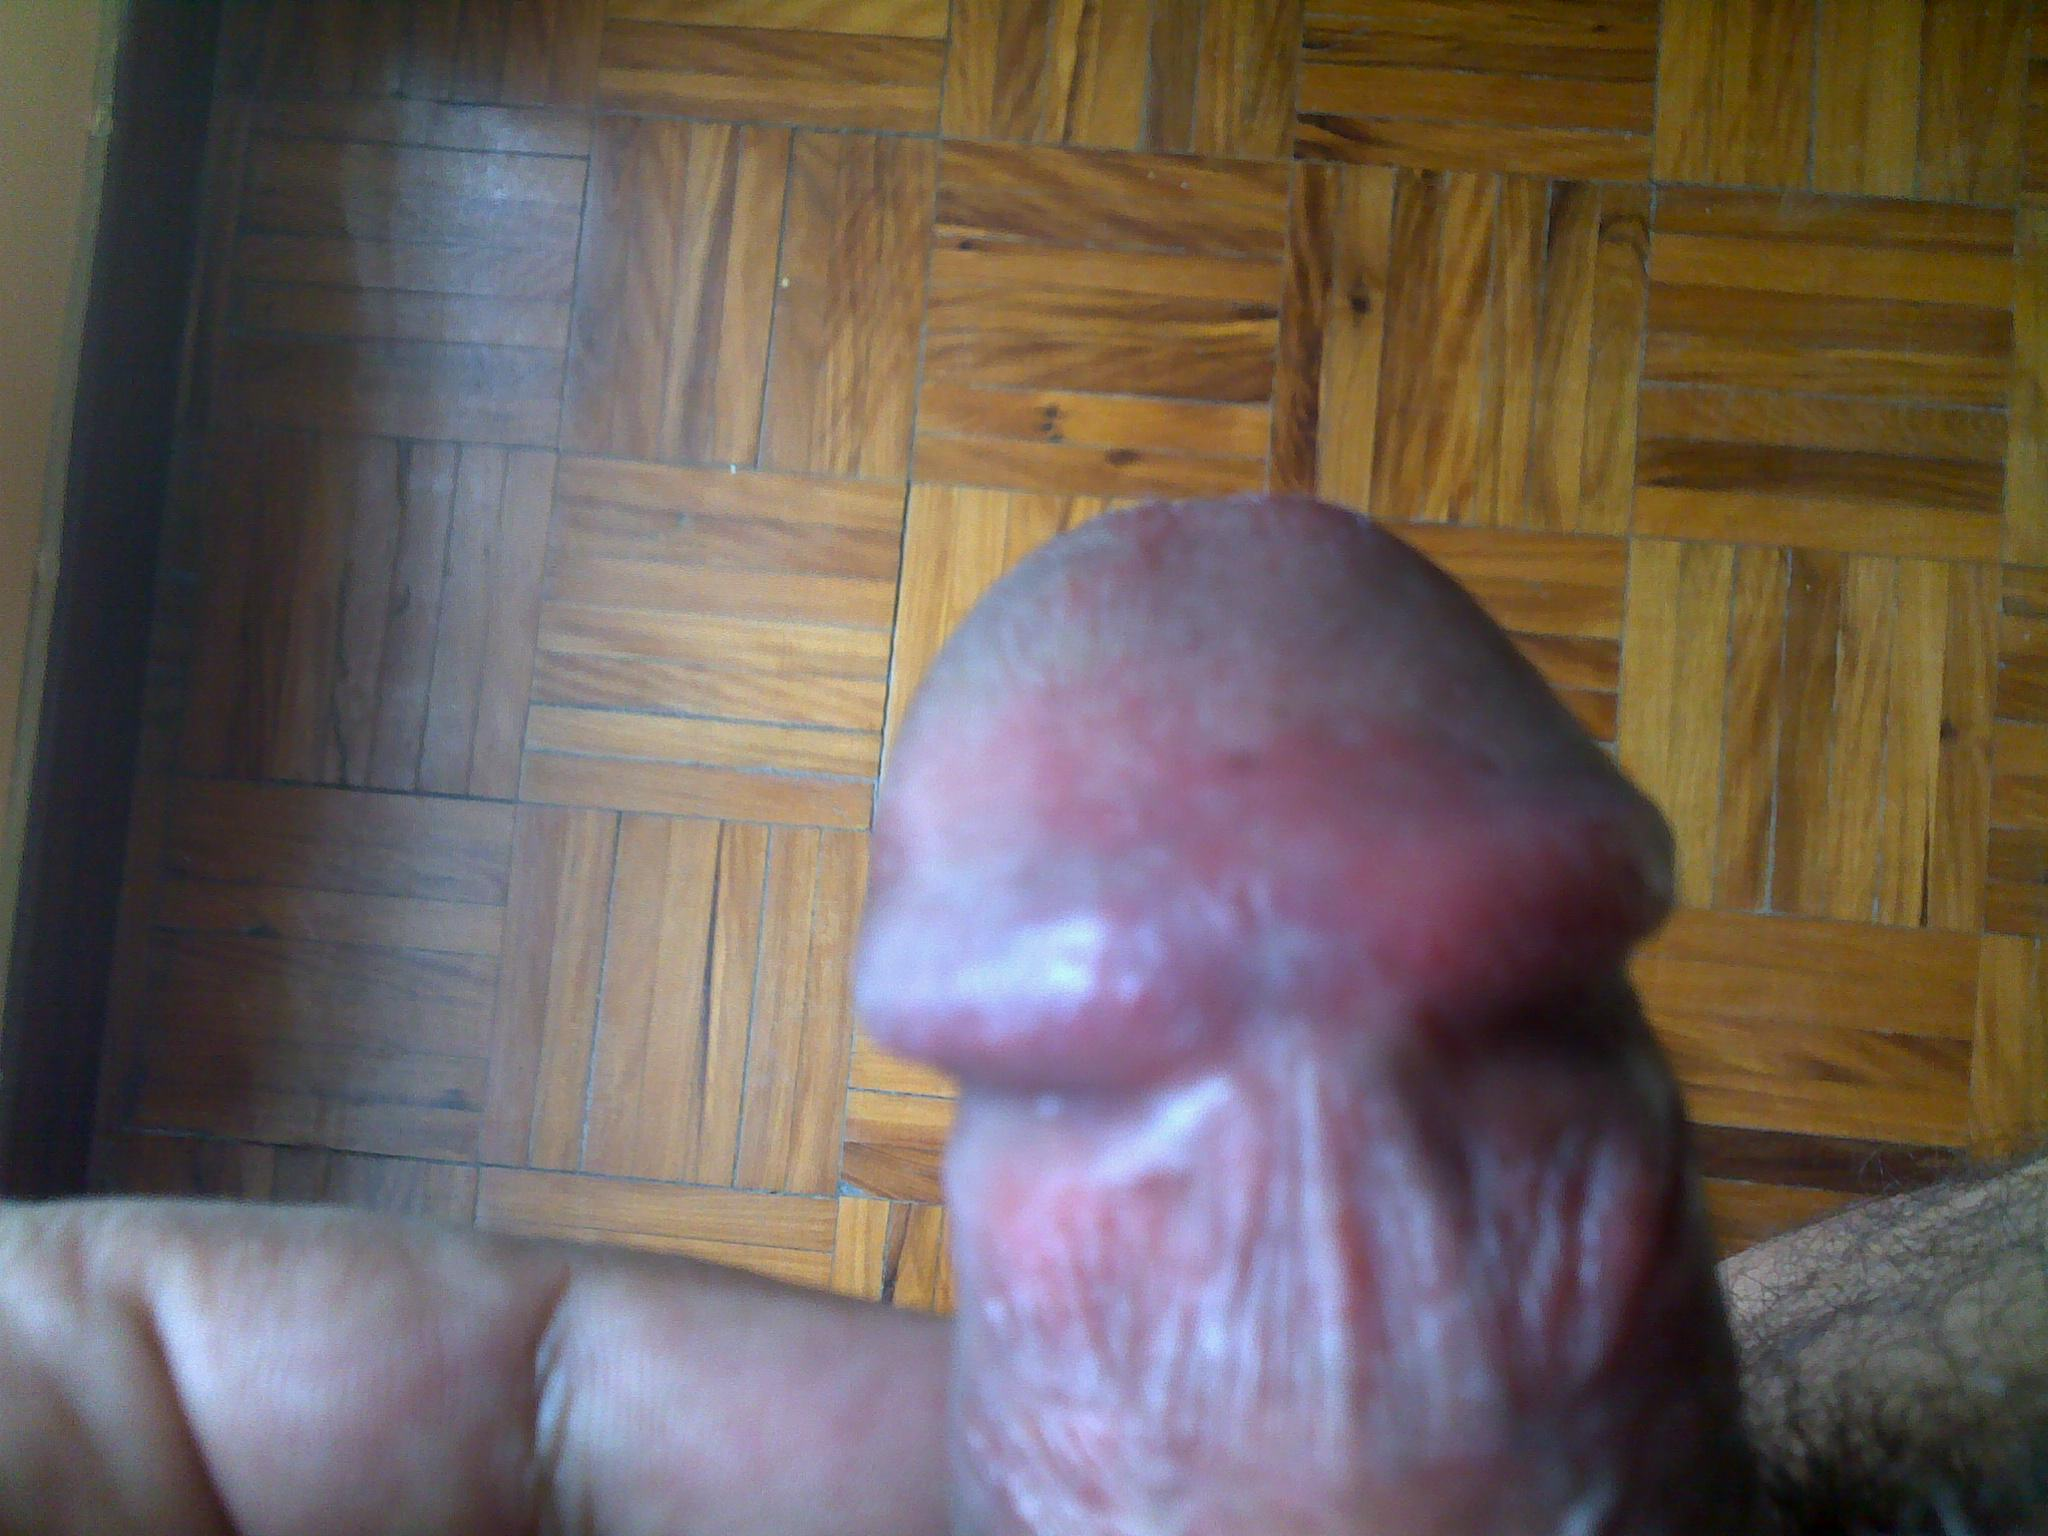 Red patch on tip of penis